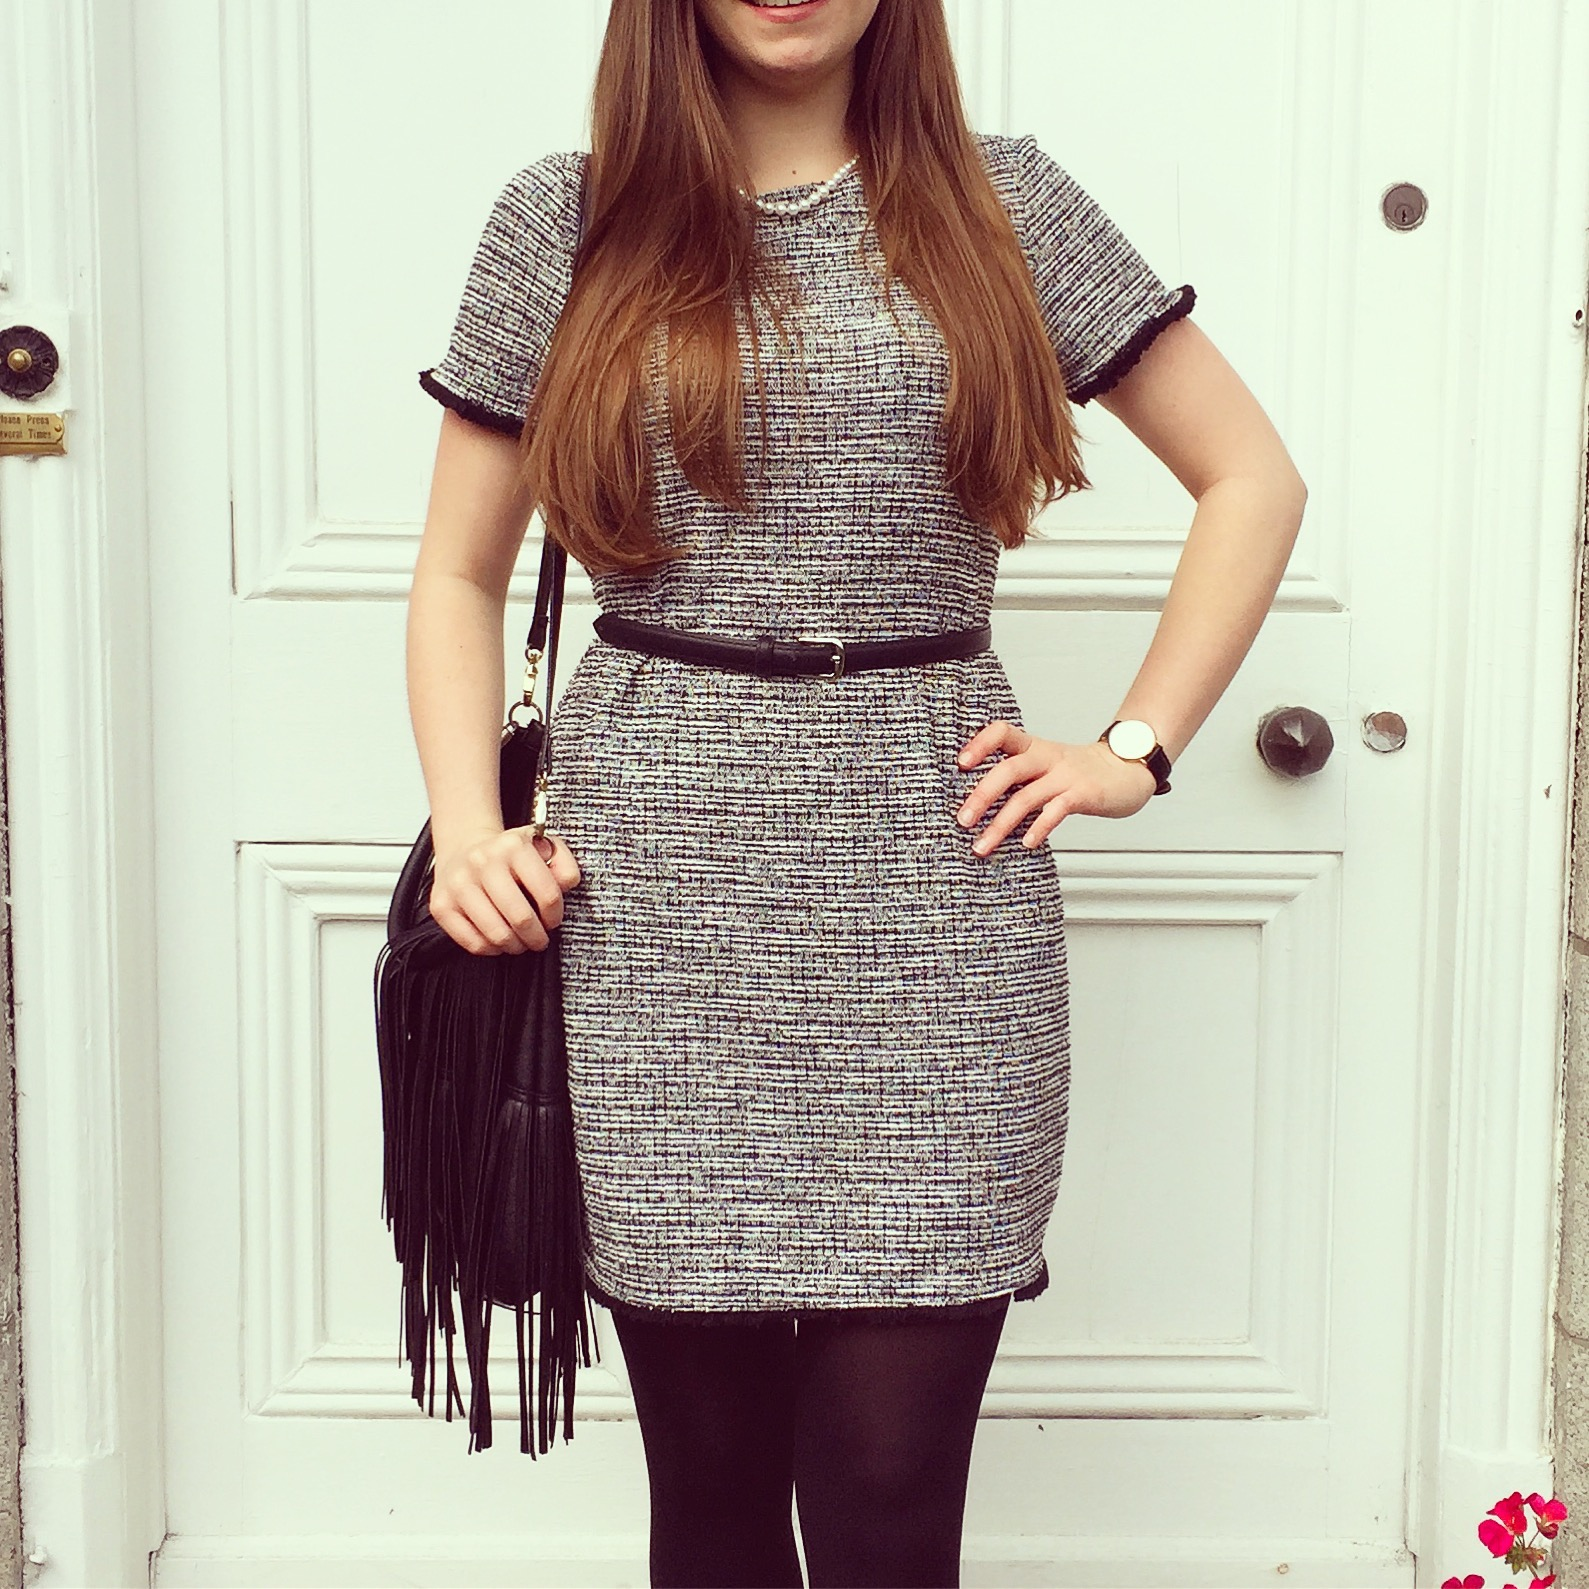 Chanel Lookalike Dress - Outfit Of The Day